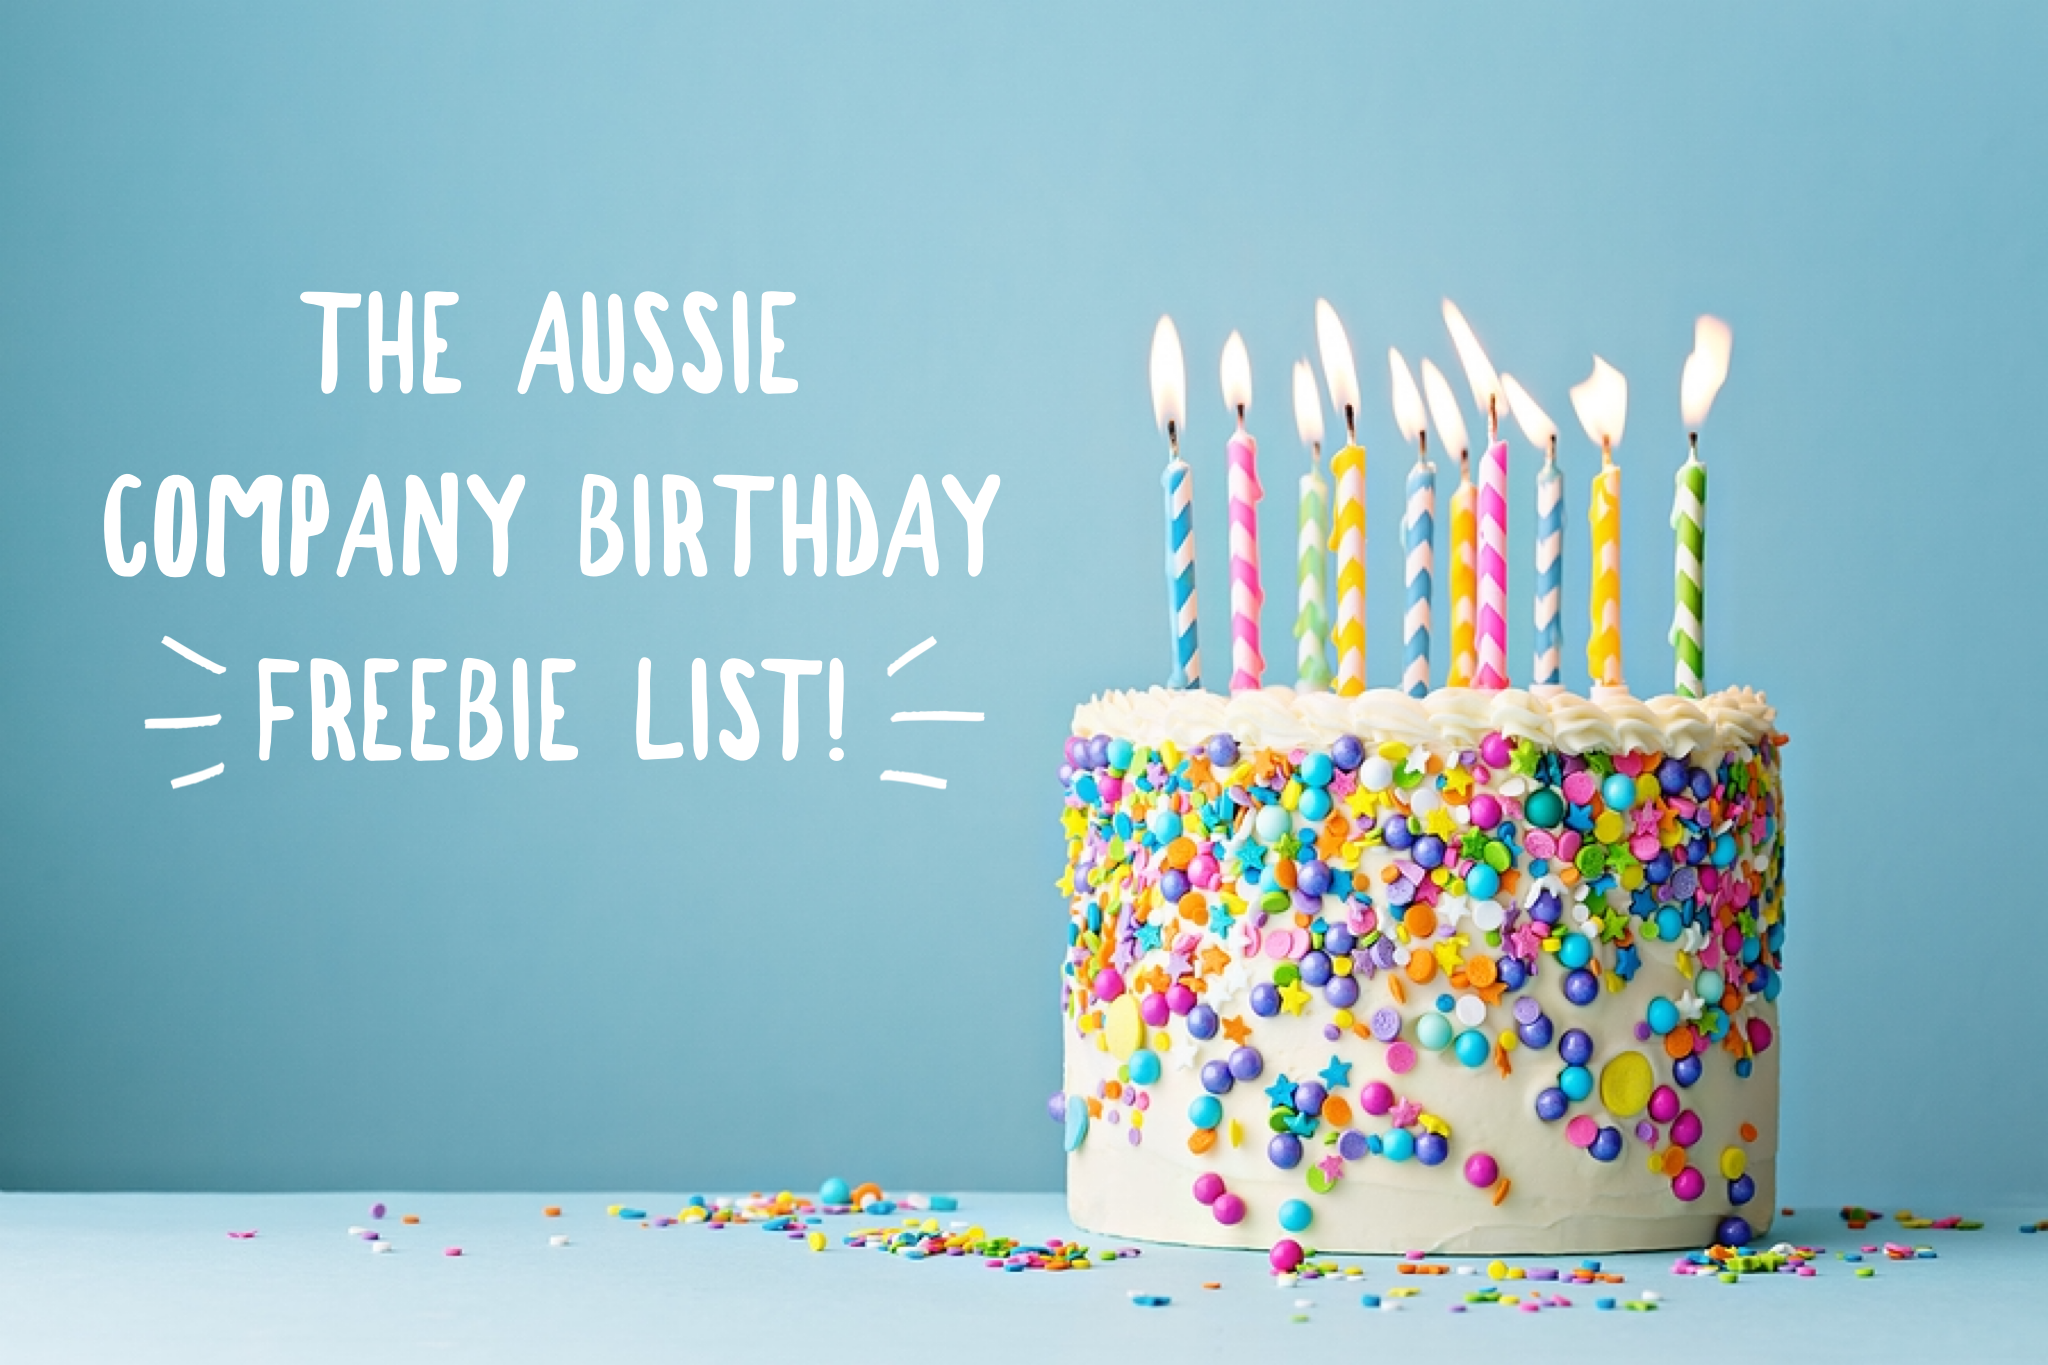 This mum compiled an Aussie businesses birthday freebies list!